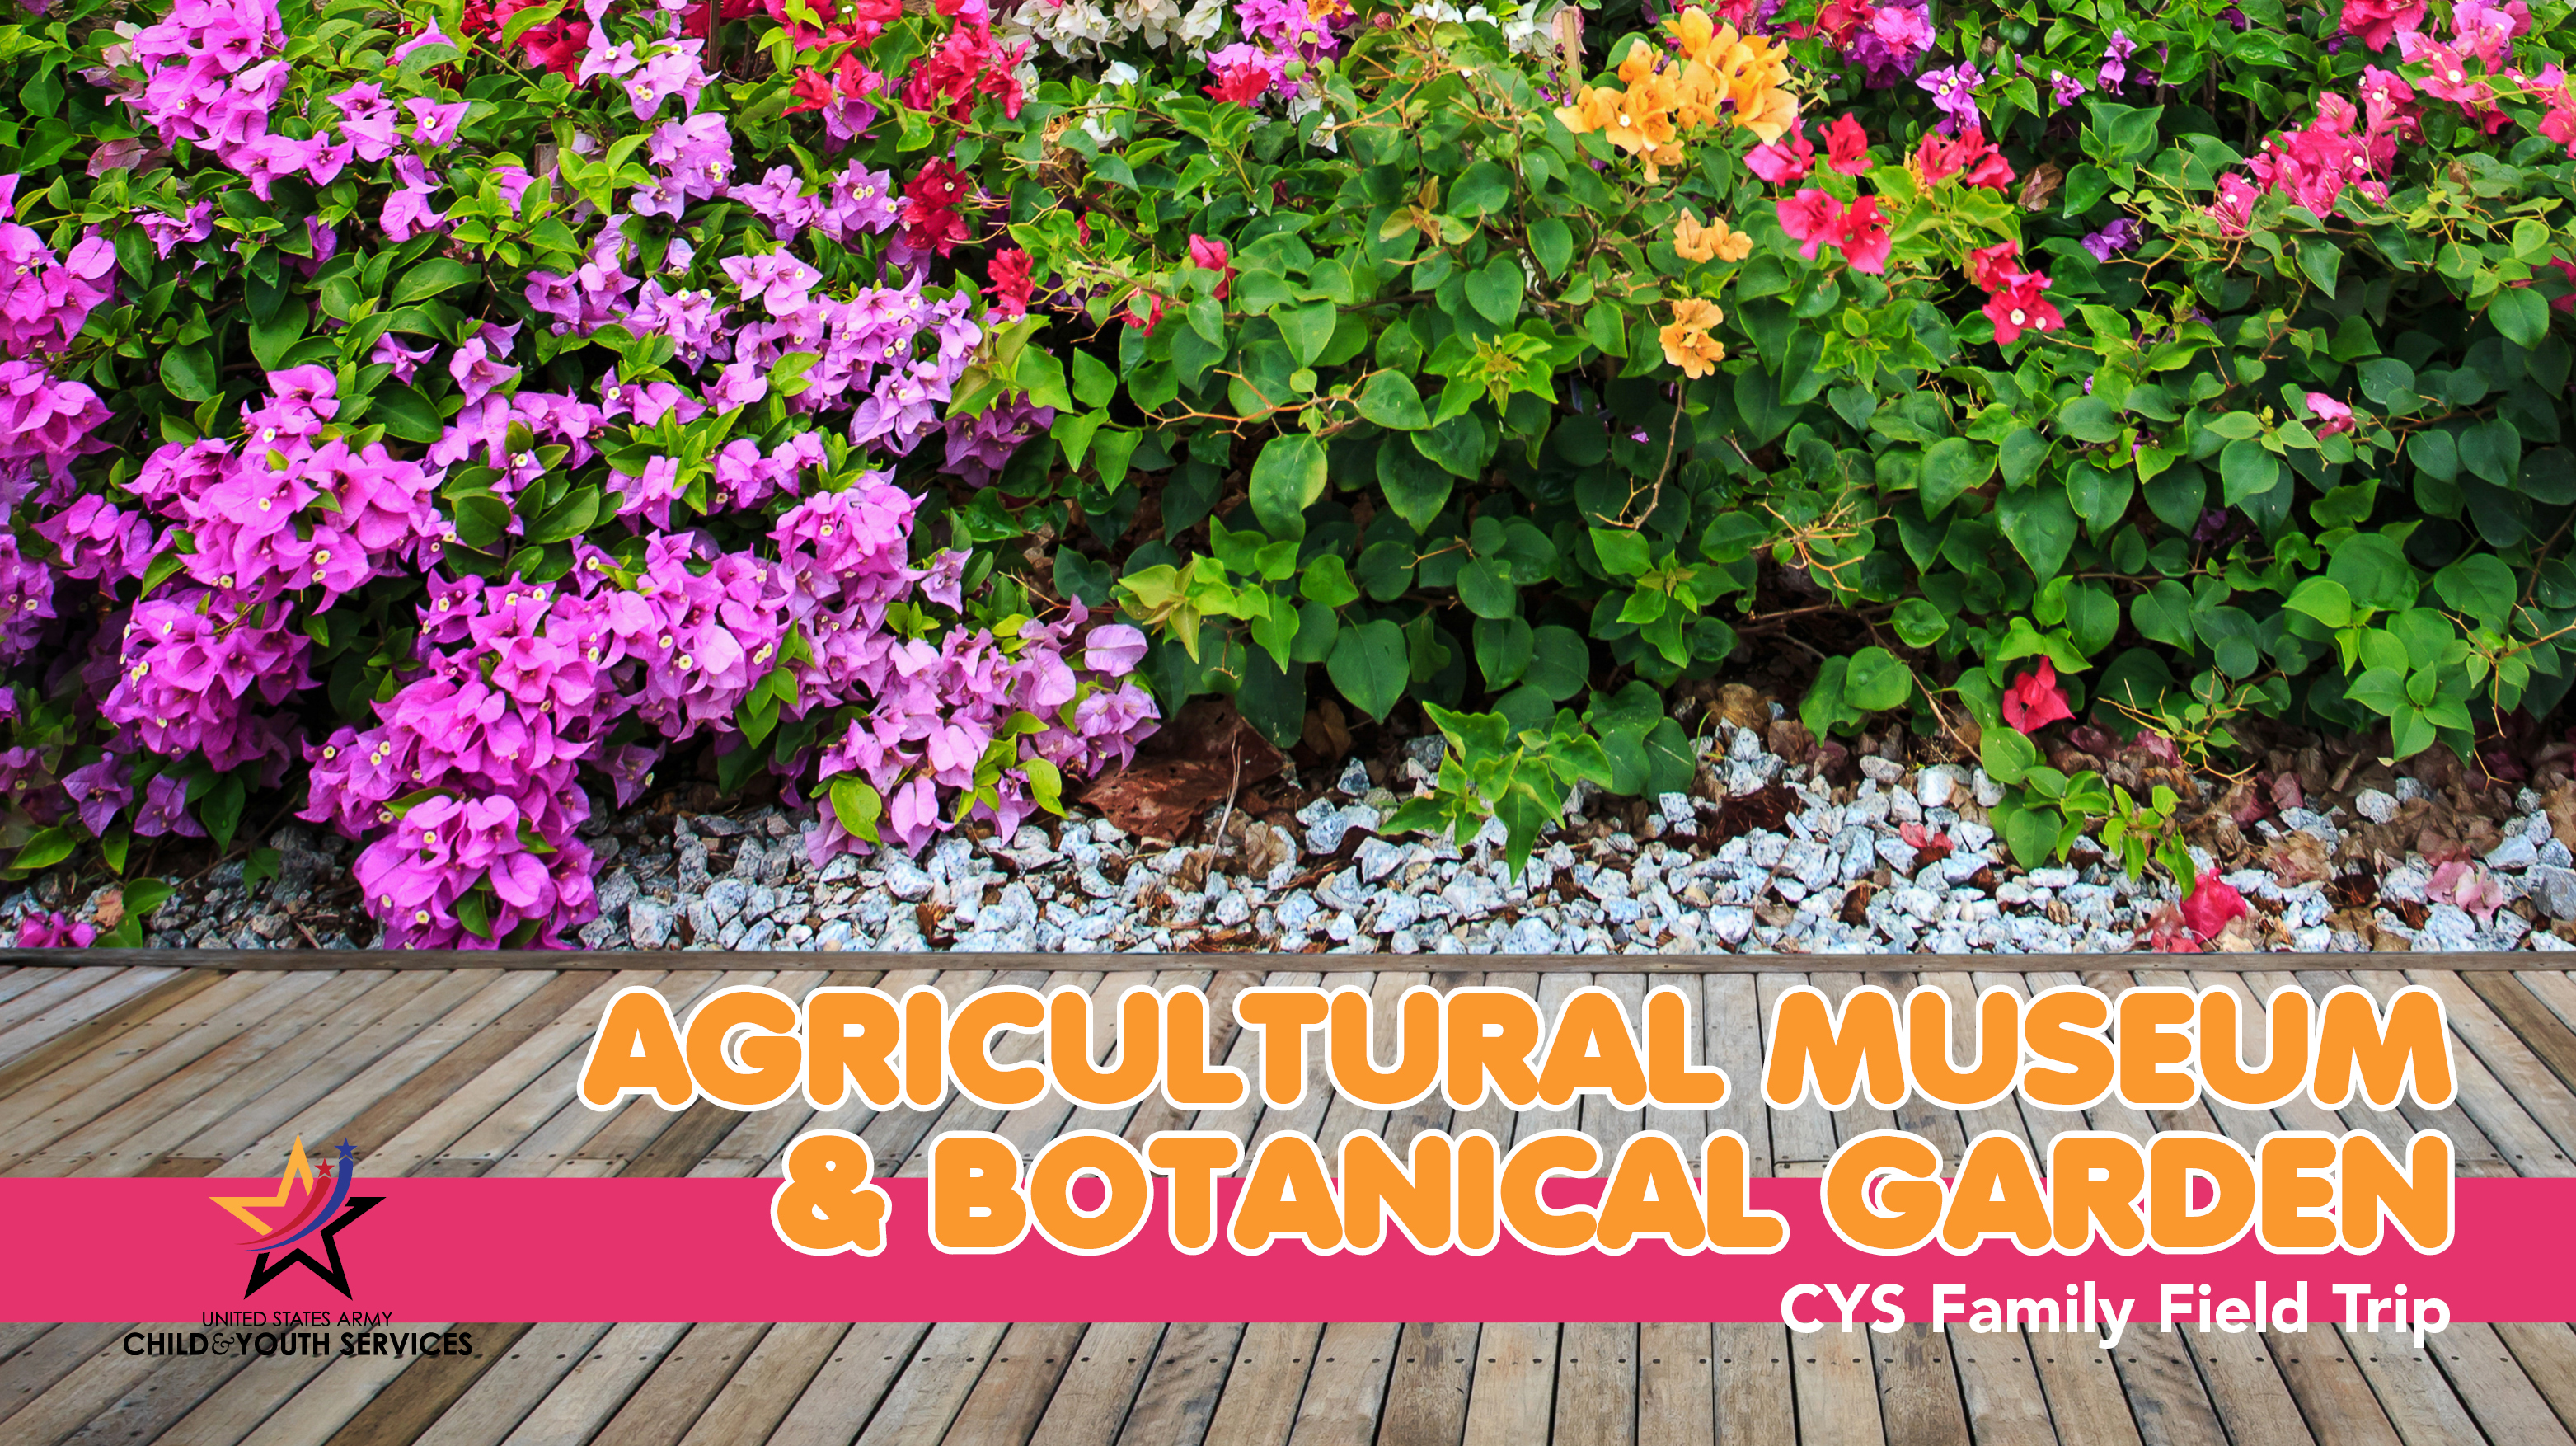 CYS Family Field Trip - Seoul Agricultural Museum & Botanical Garden